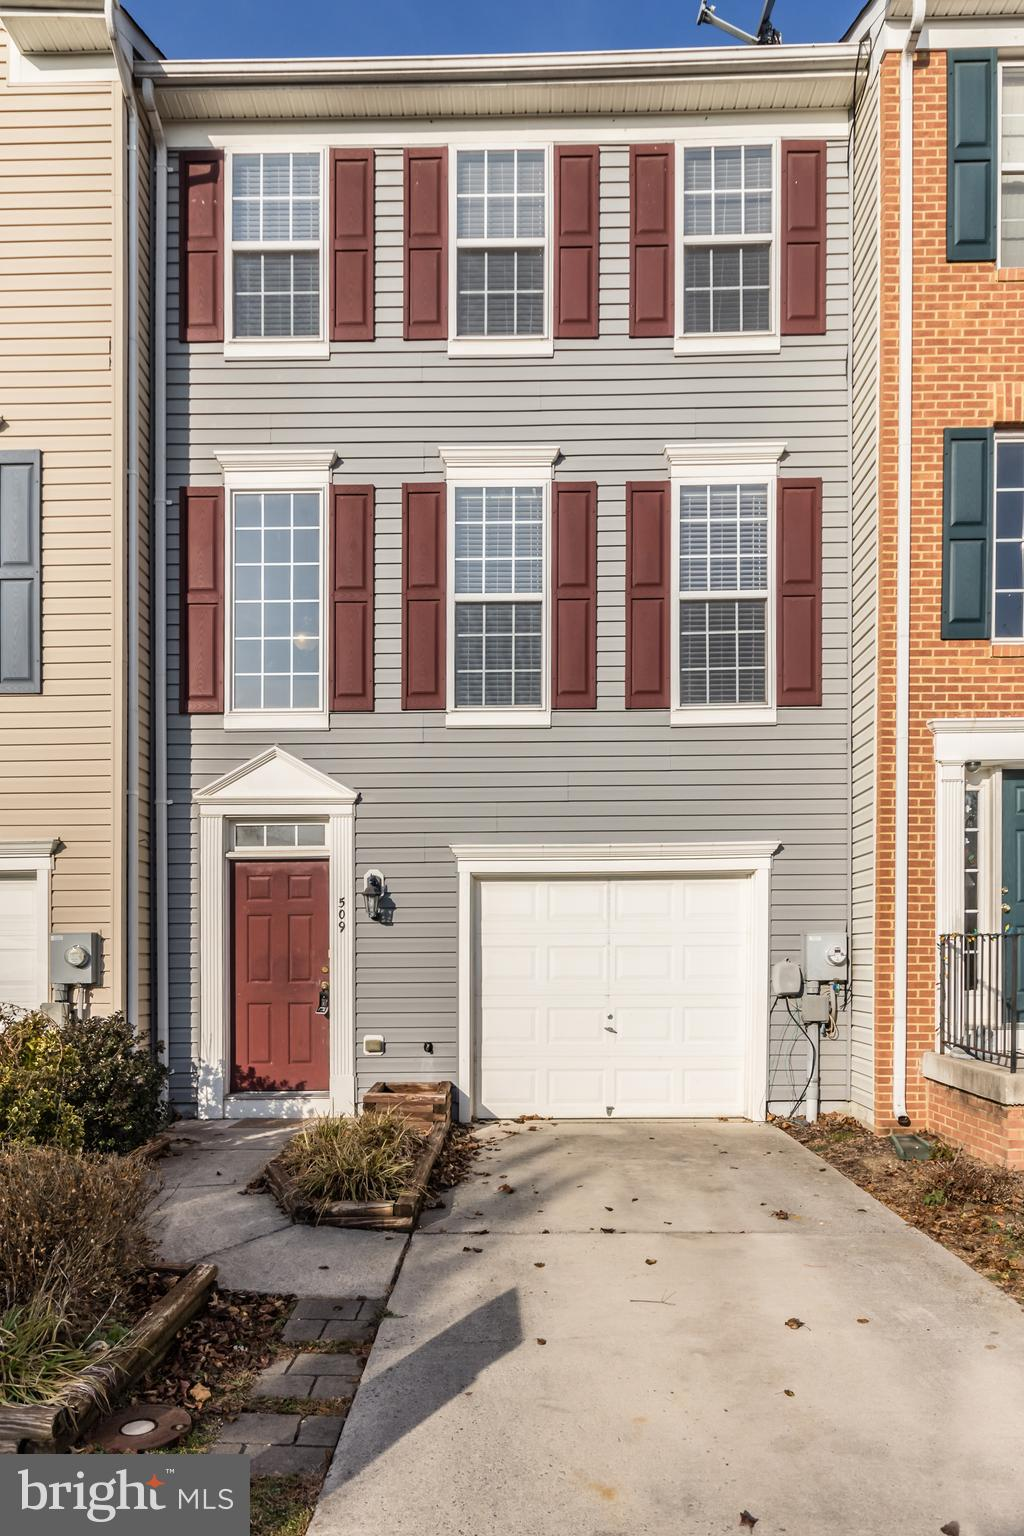 Worth the wait, this 3 bedroom/ 2.5 bath interior townhome on Cul-de-sac is move in ready. Spacious